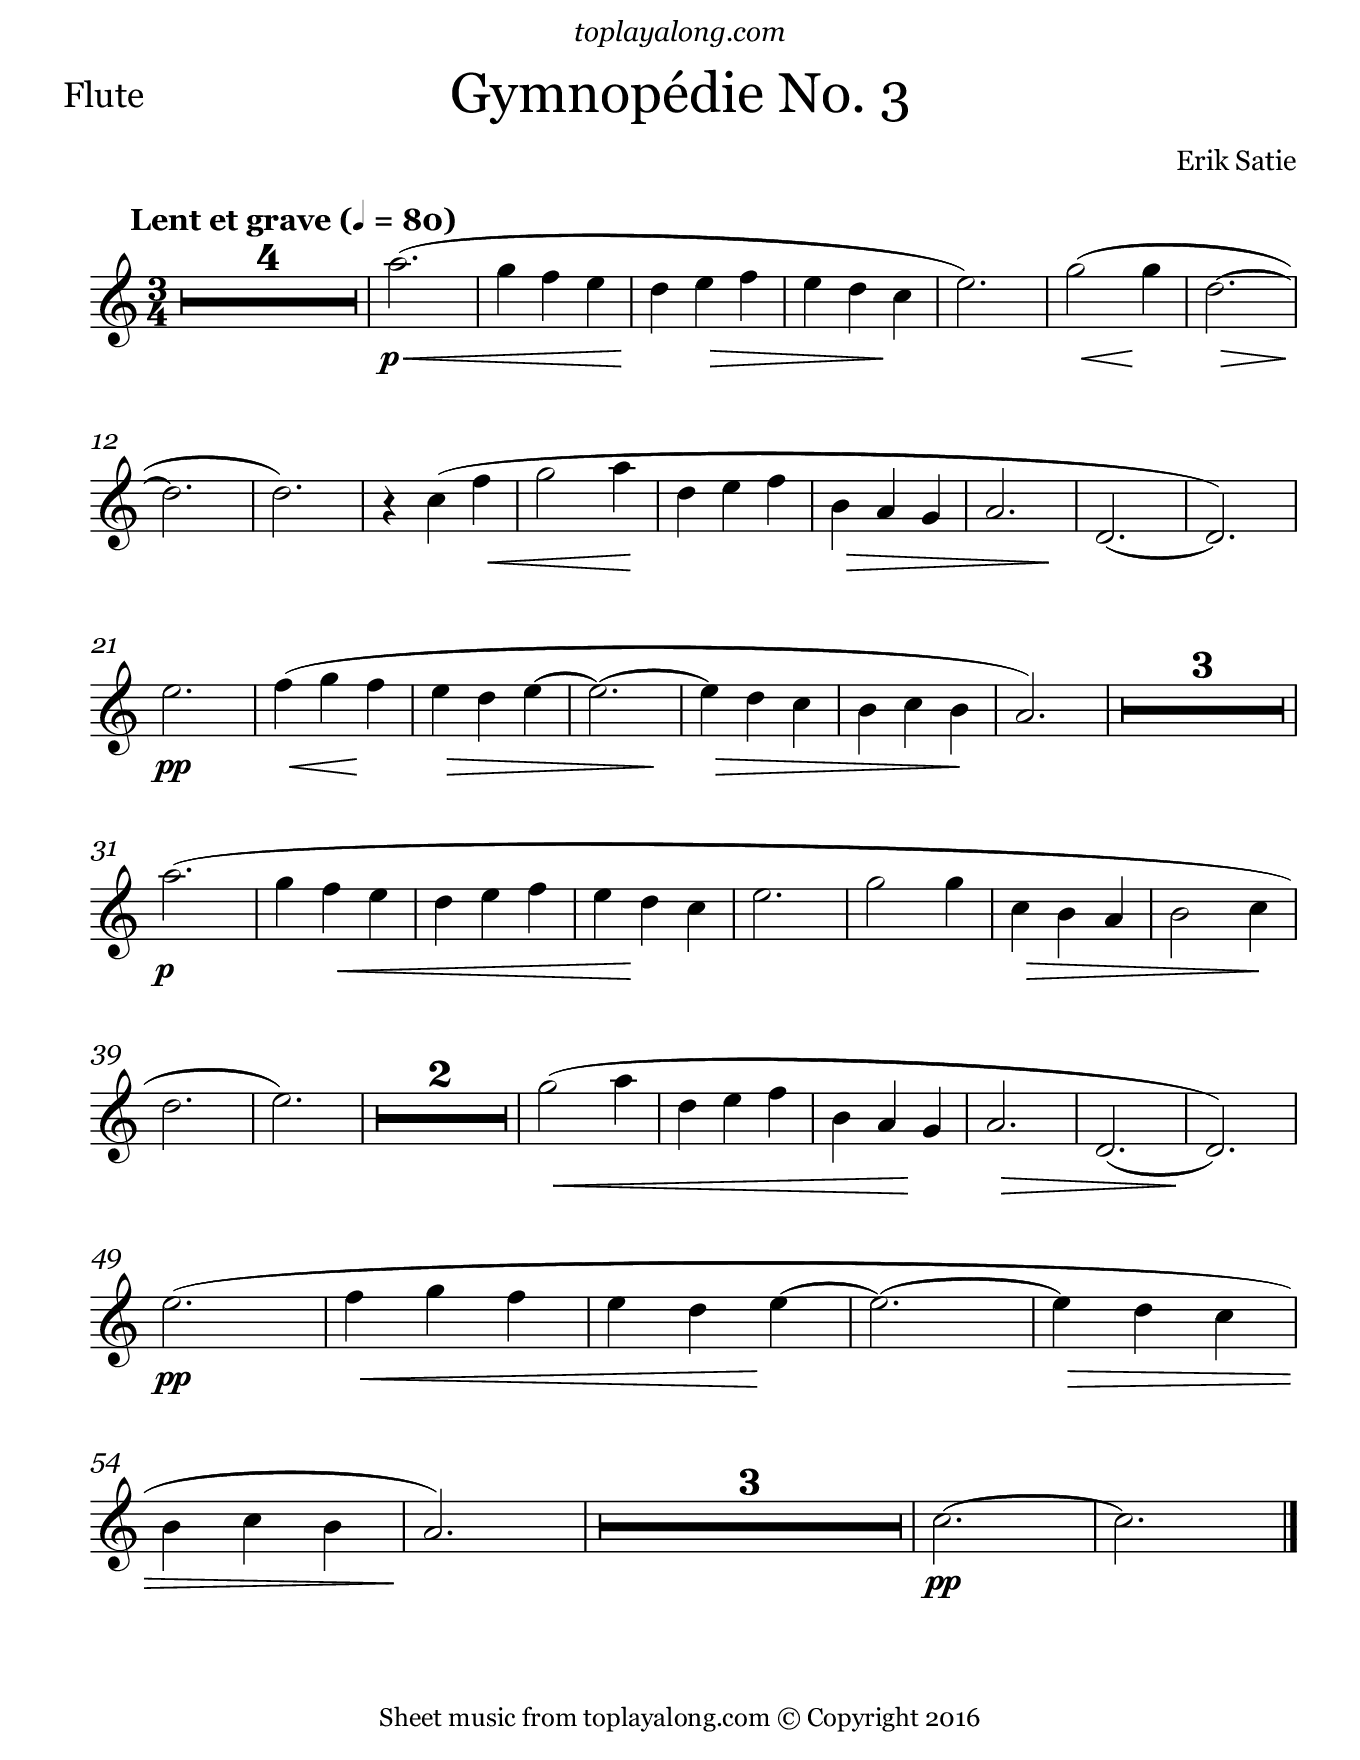 Gymnopédie No. 3 by Satie. Sheet music for Flute, page 1.